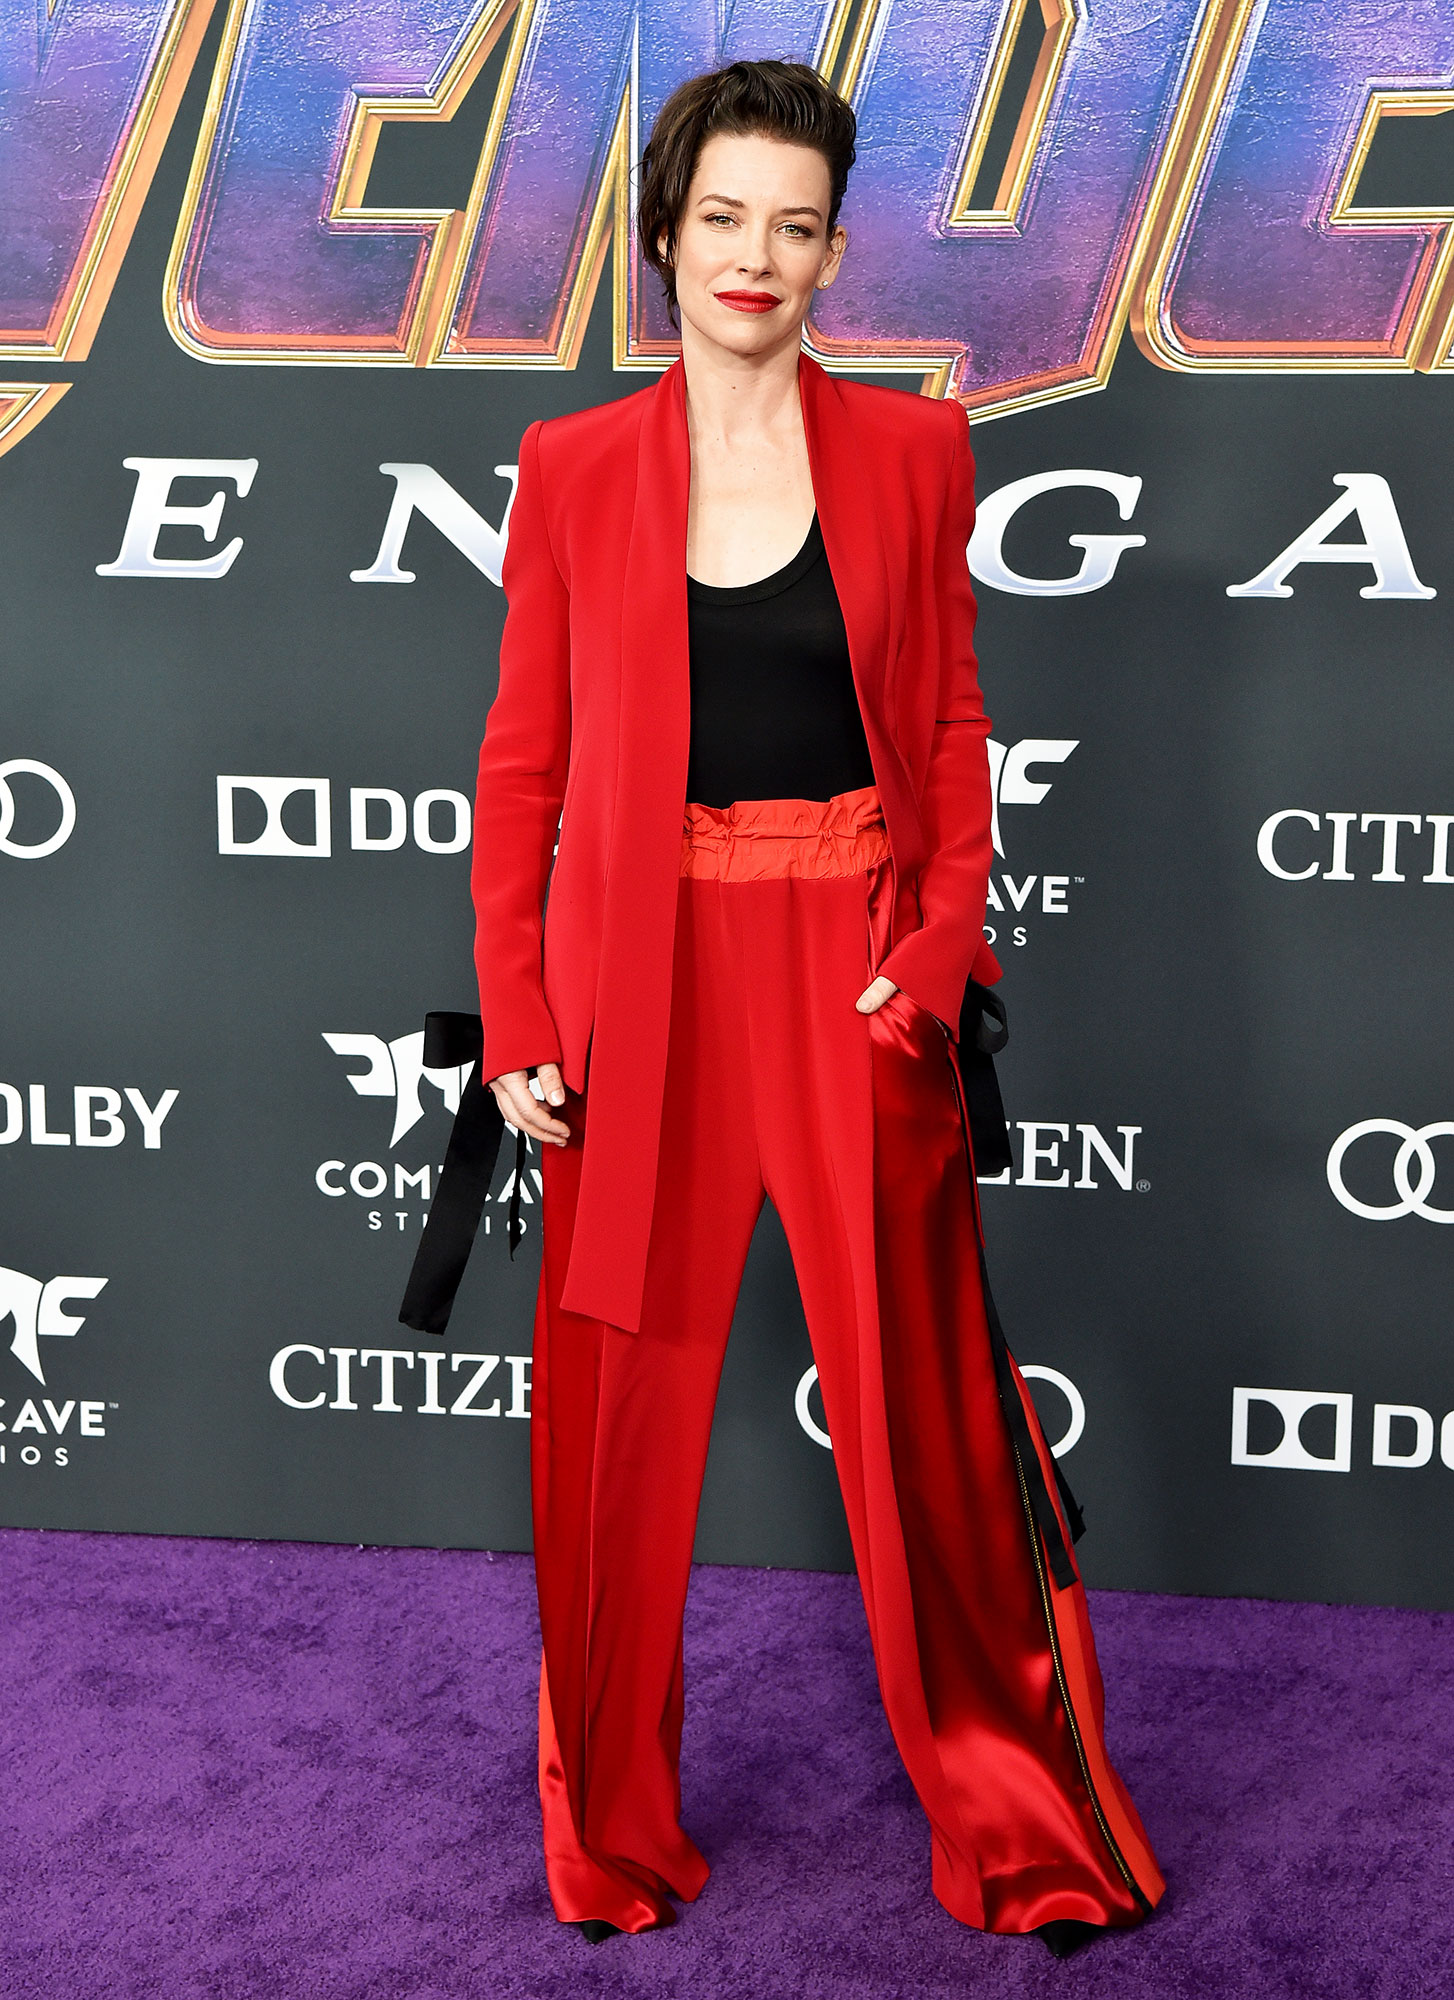 Evangeline Lilly Avengers Premiere - Wearing a scarlet Denis Gagnon suit and matching lip.